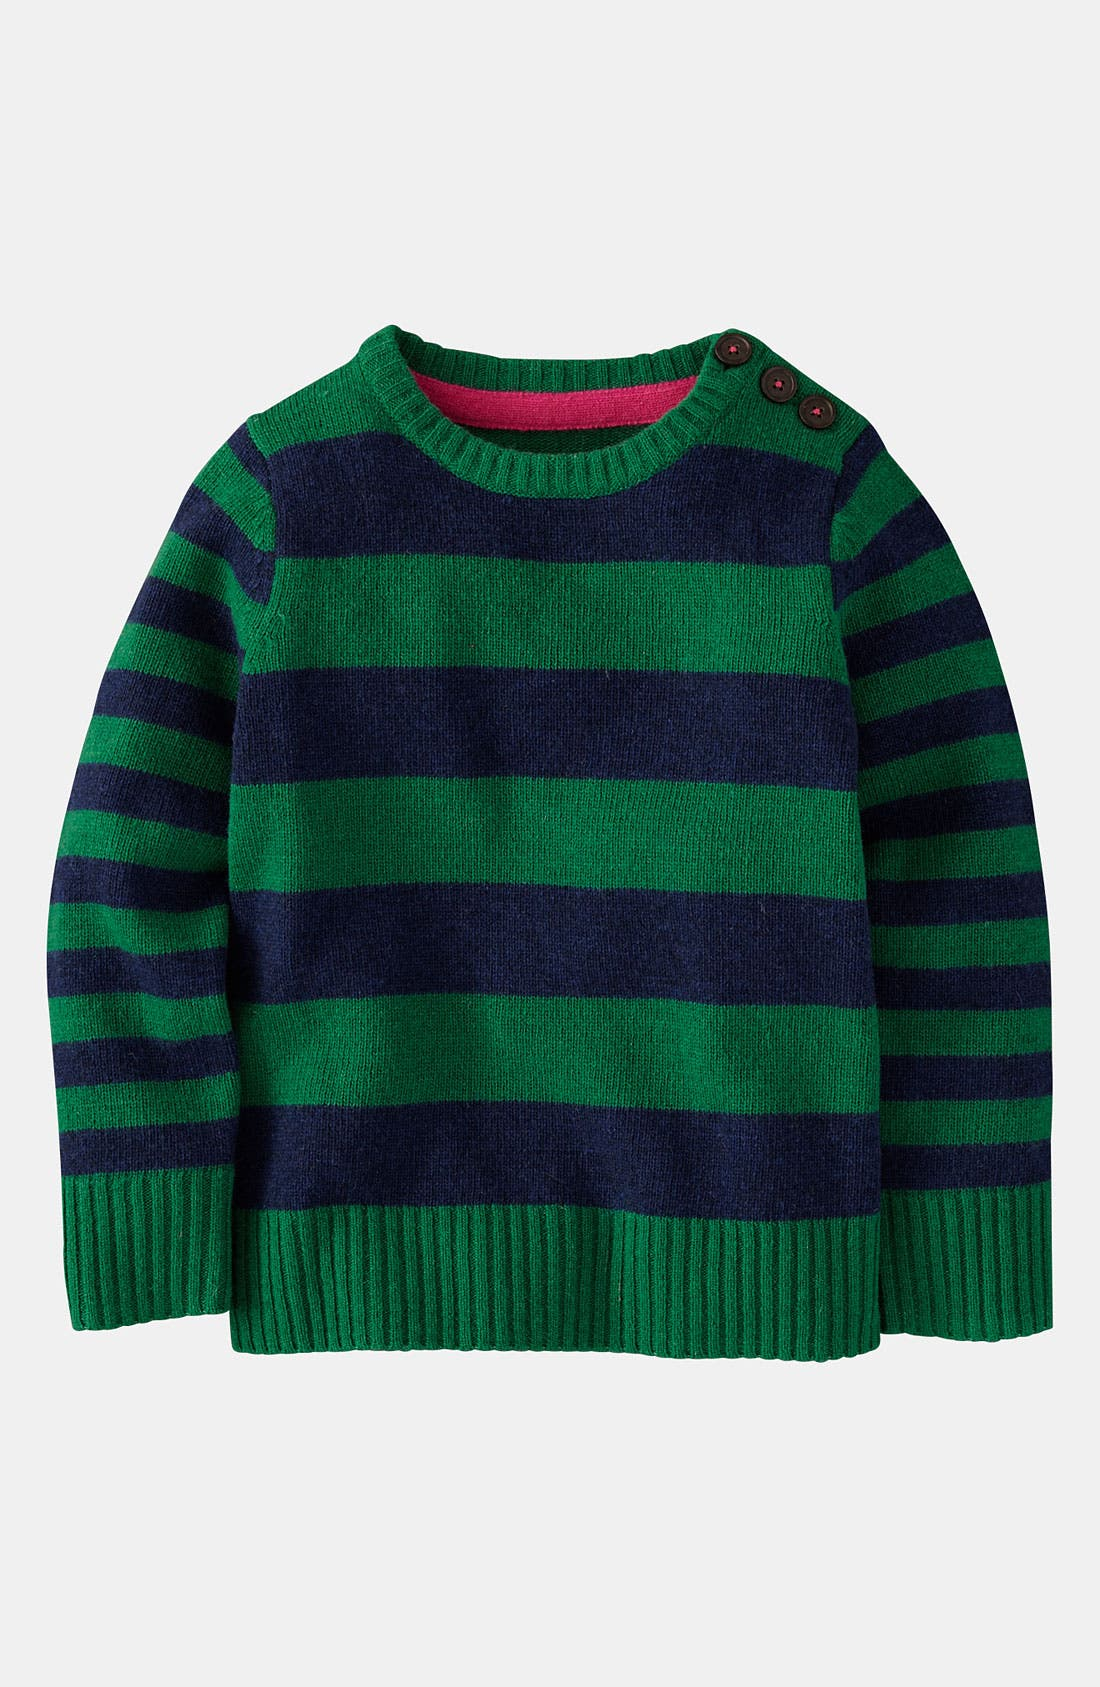 Alternate Image 1 Selected - Mini Boden 'Chunky' Sweater (Toddler)